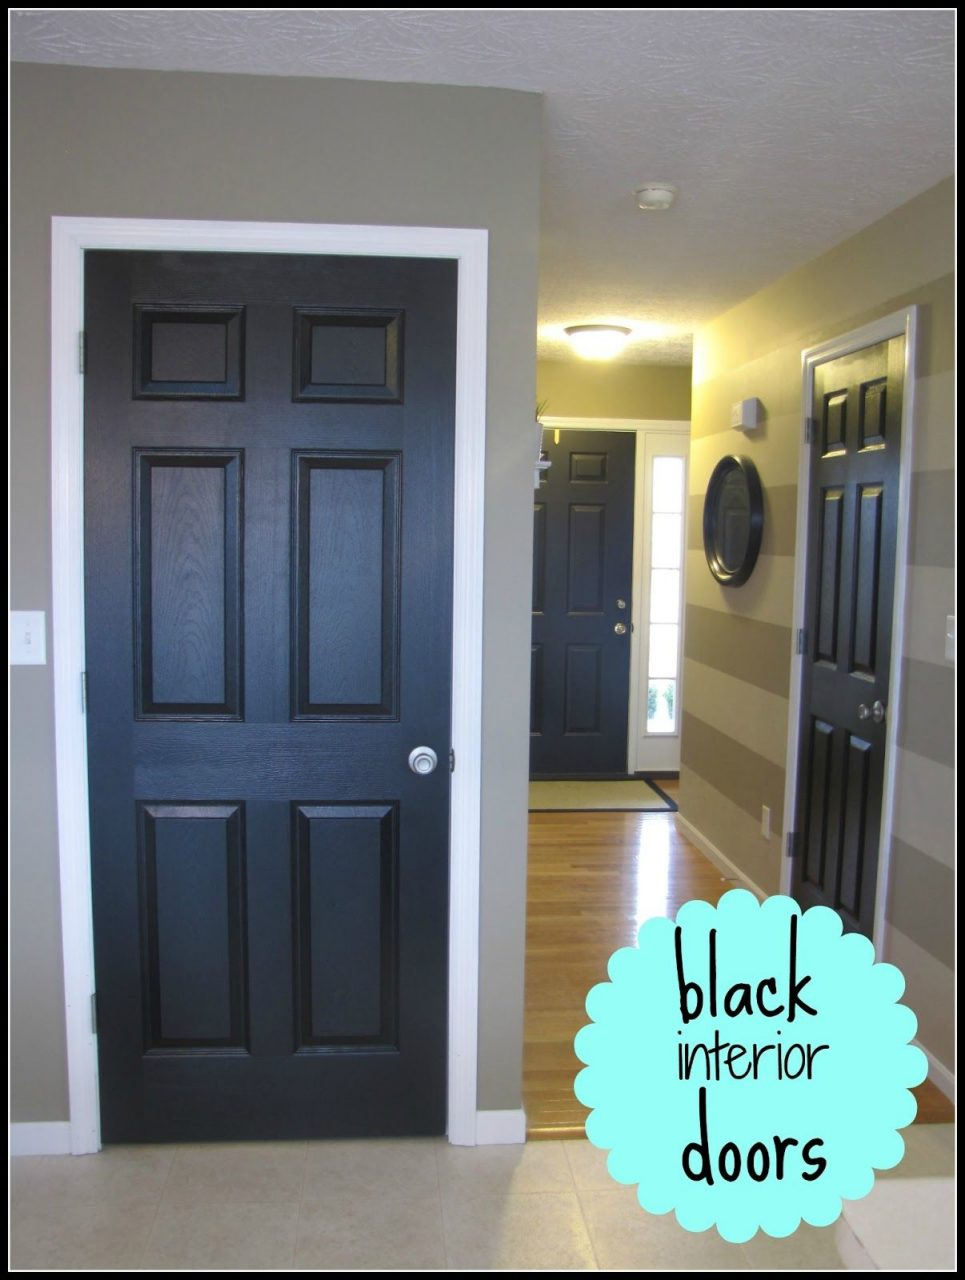 Love This Look Black Painted Interior Doorsplus A Neat Hint On